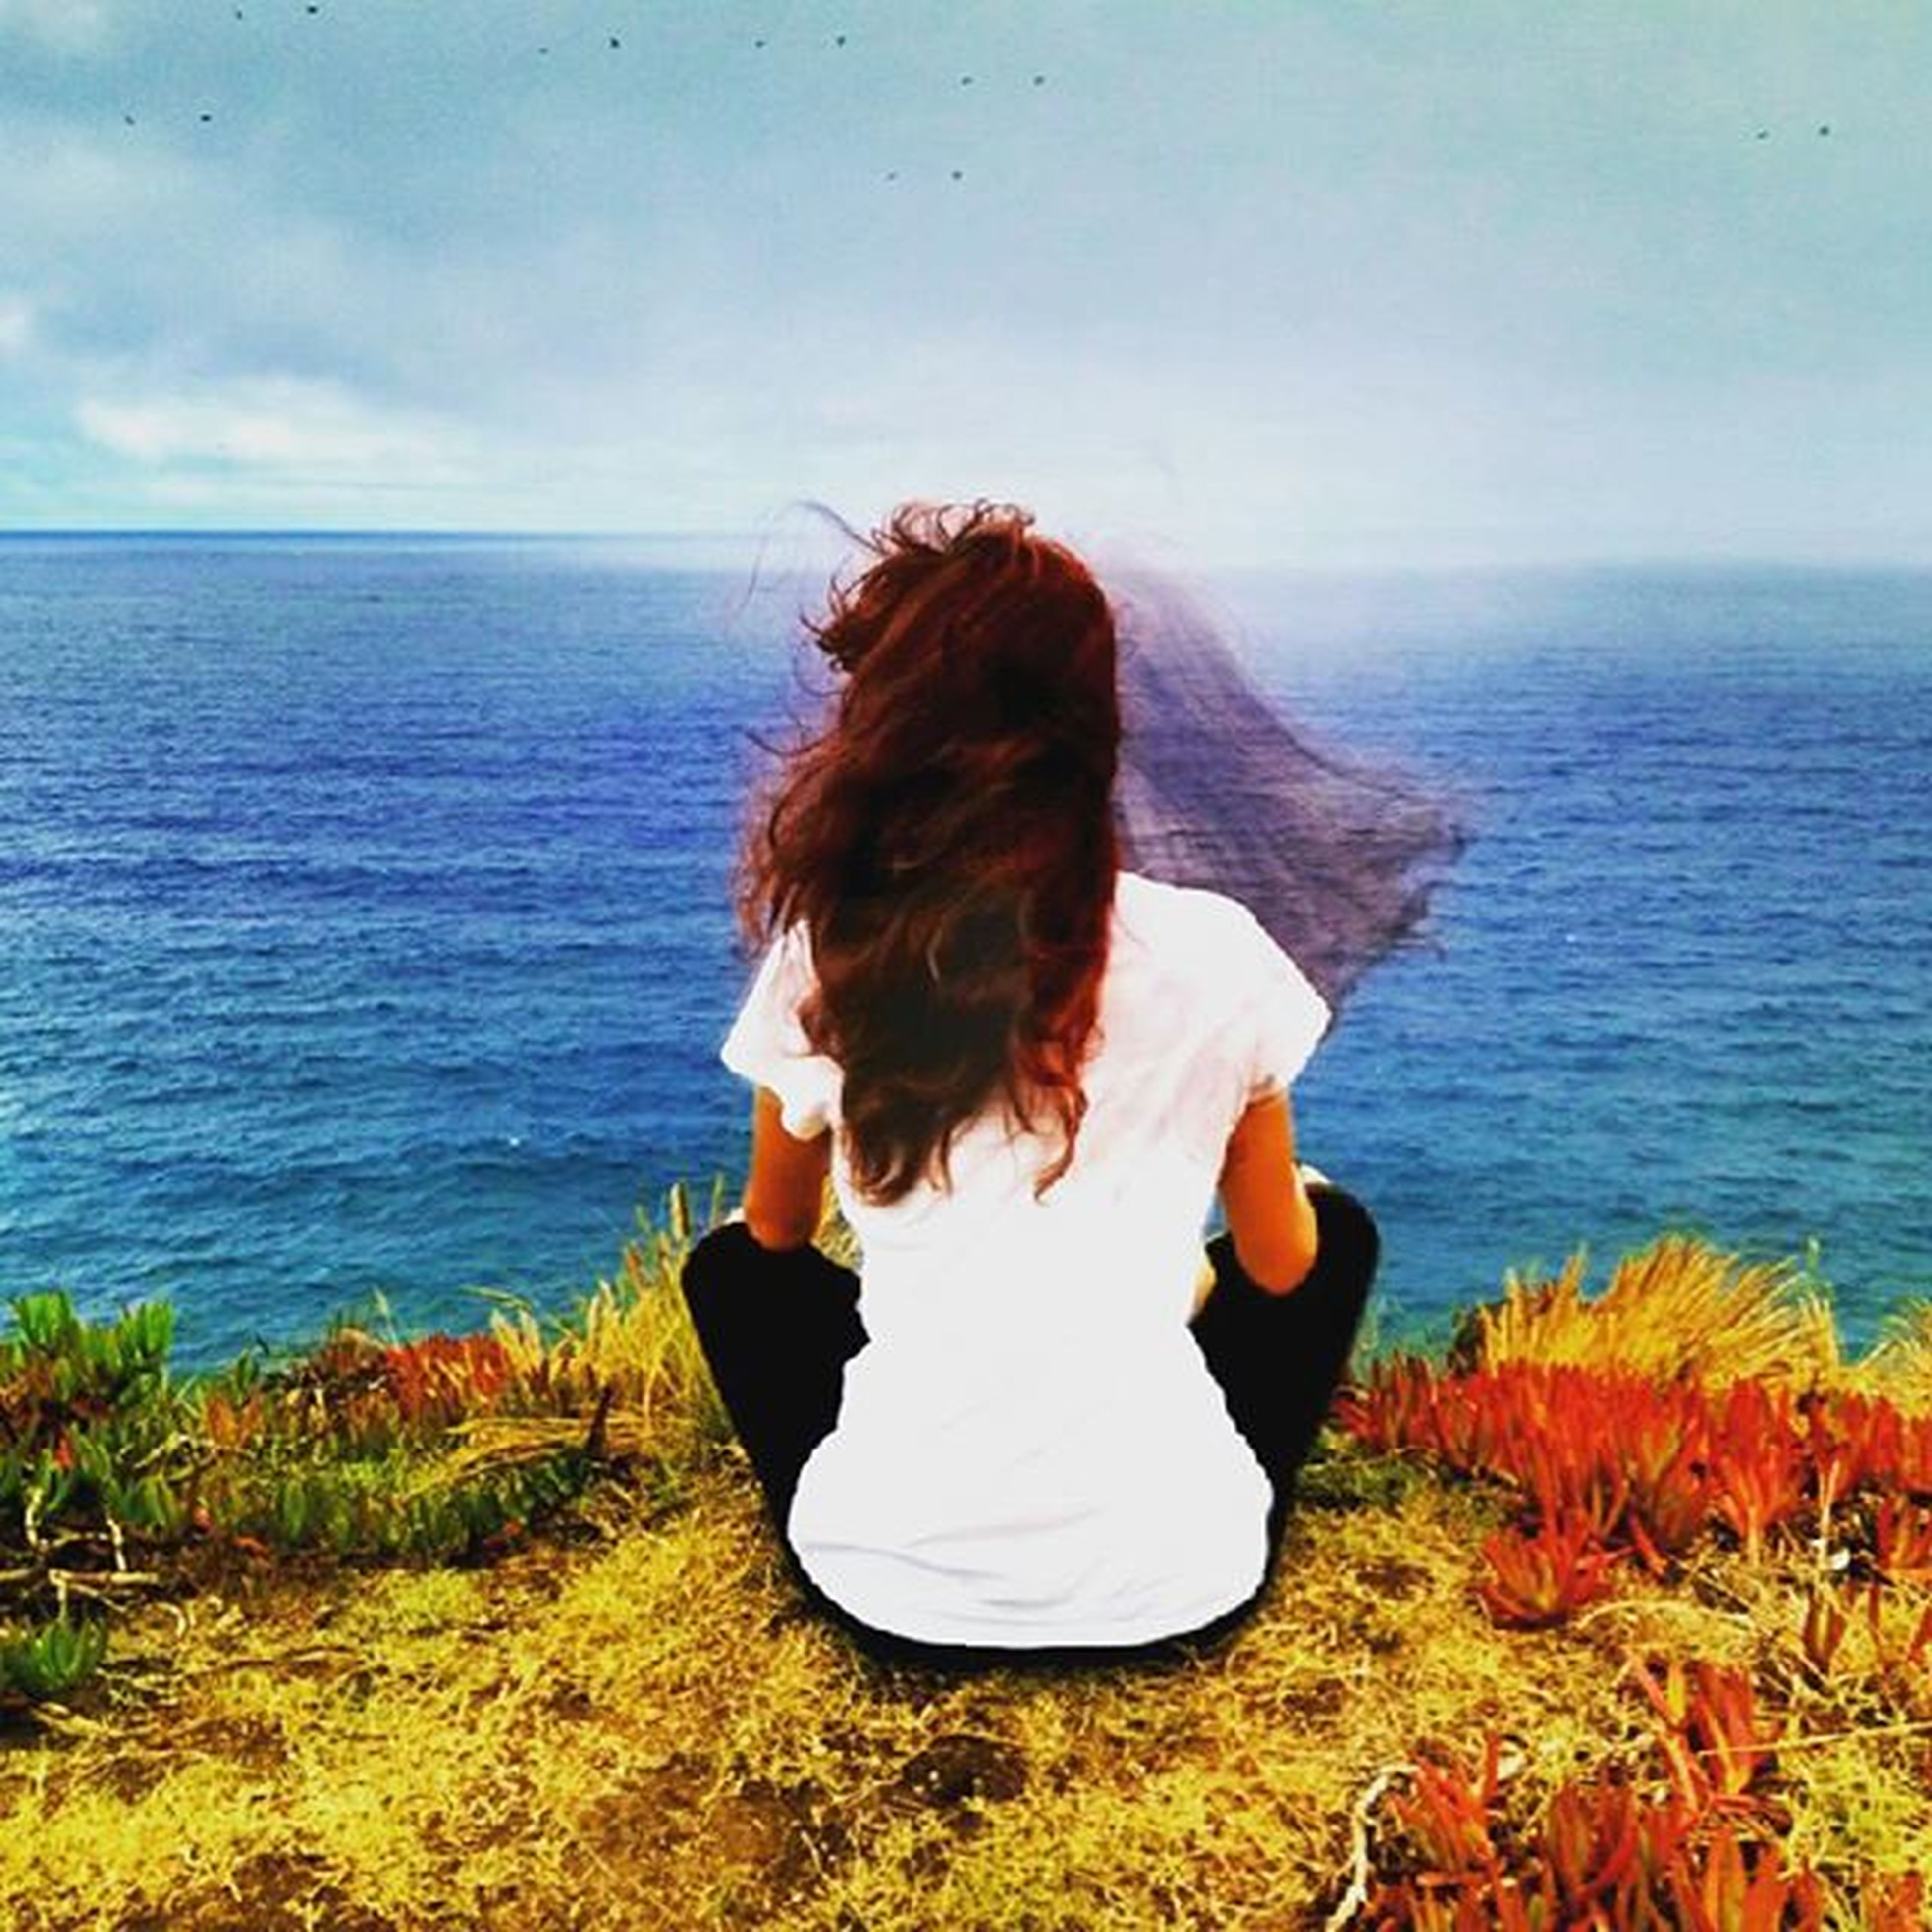 sea, horizon over water, water, rear view, sky, lifestyles, leisure activity, tranquility, tranquil scene, beauty in nature, scenics, nature, person, long hair, beach, idyllic, vacations, sitting